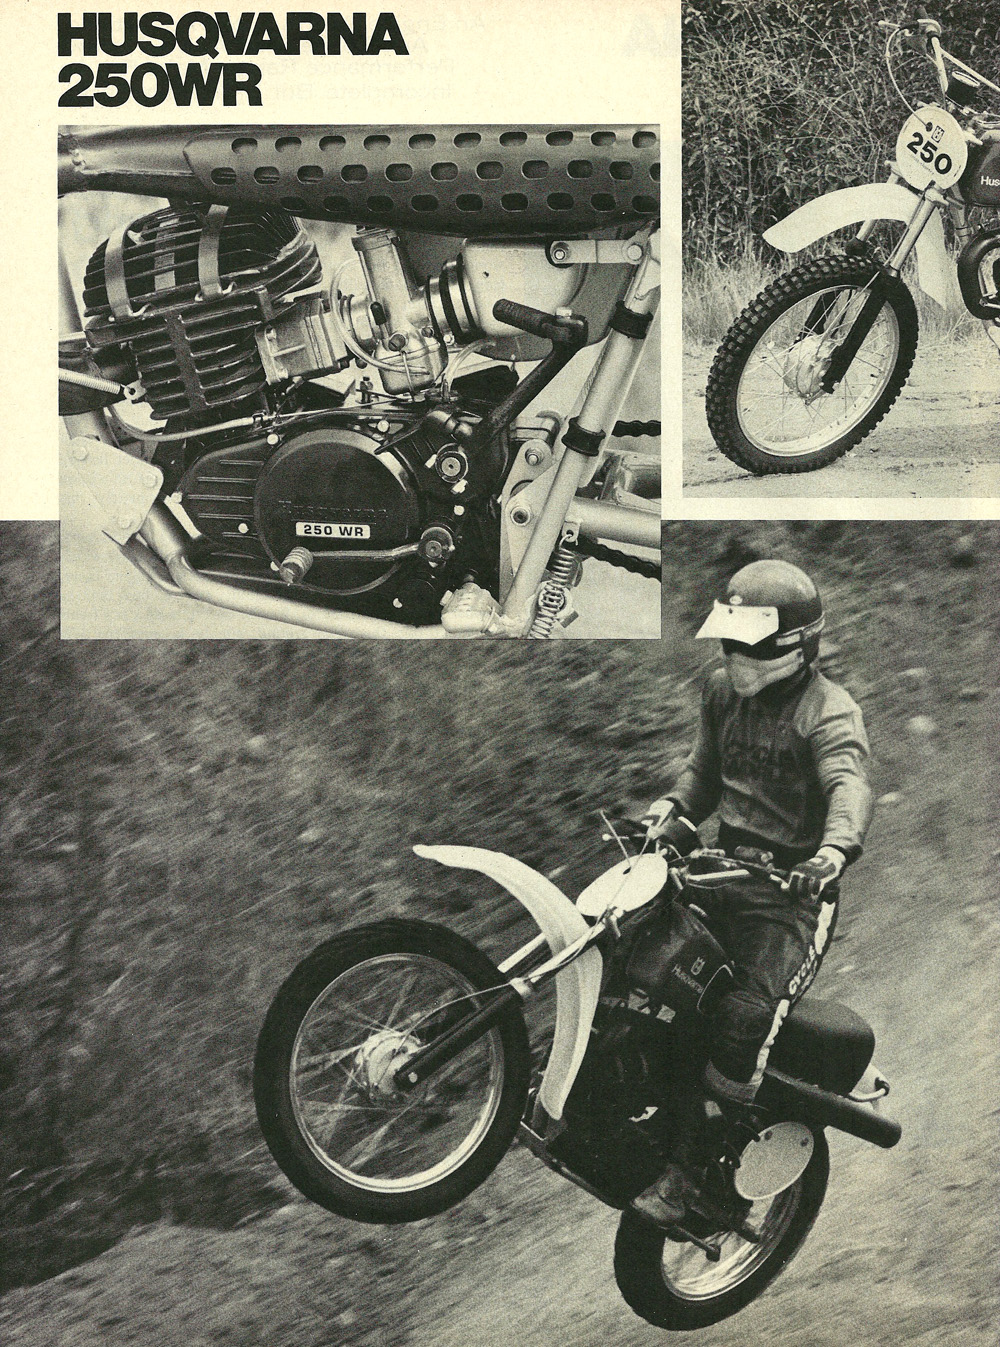 1976 Husqvarna 250WR road test 02.jpg